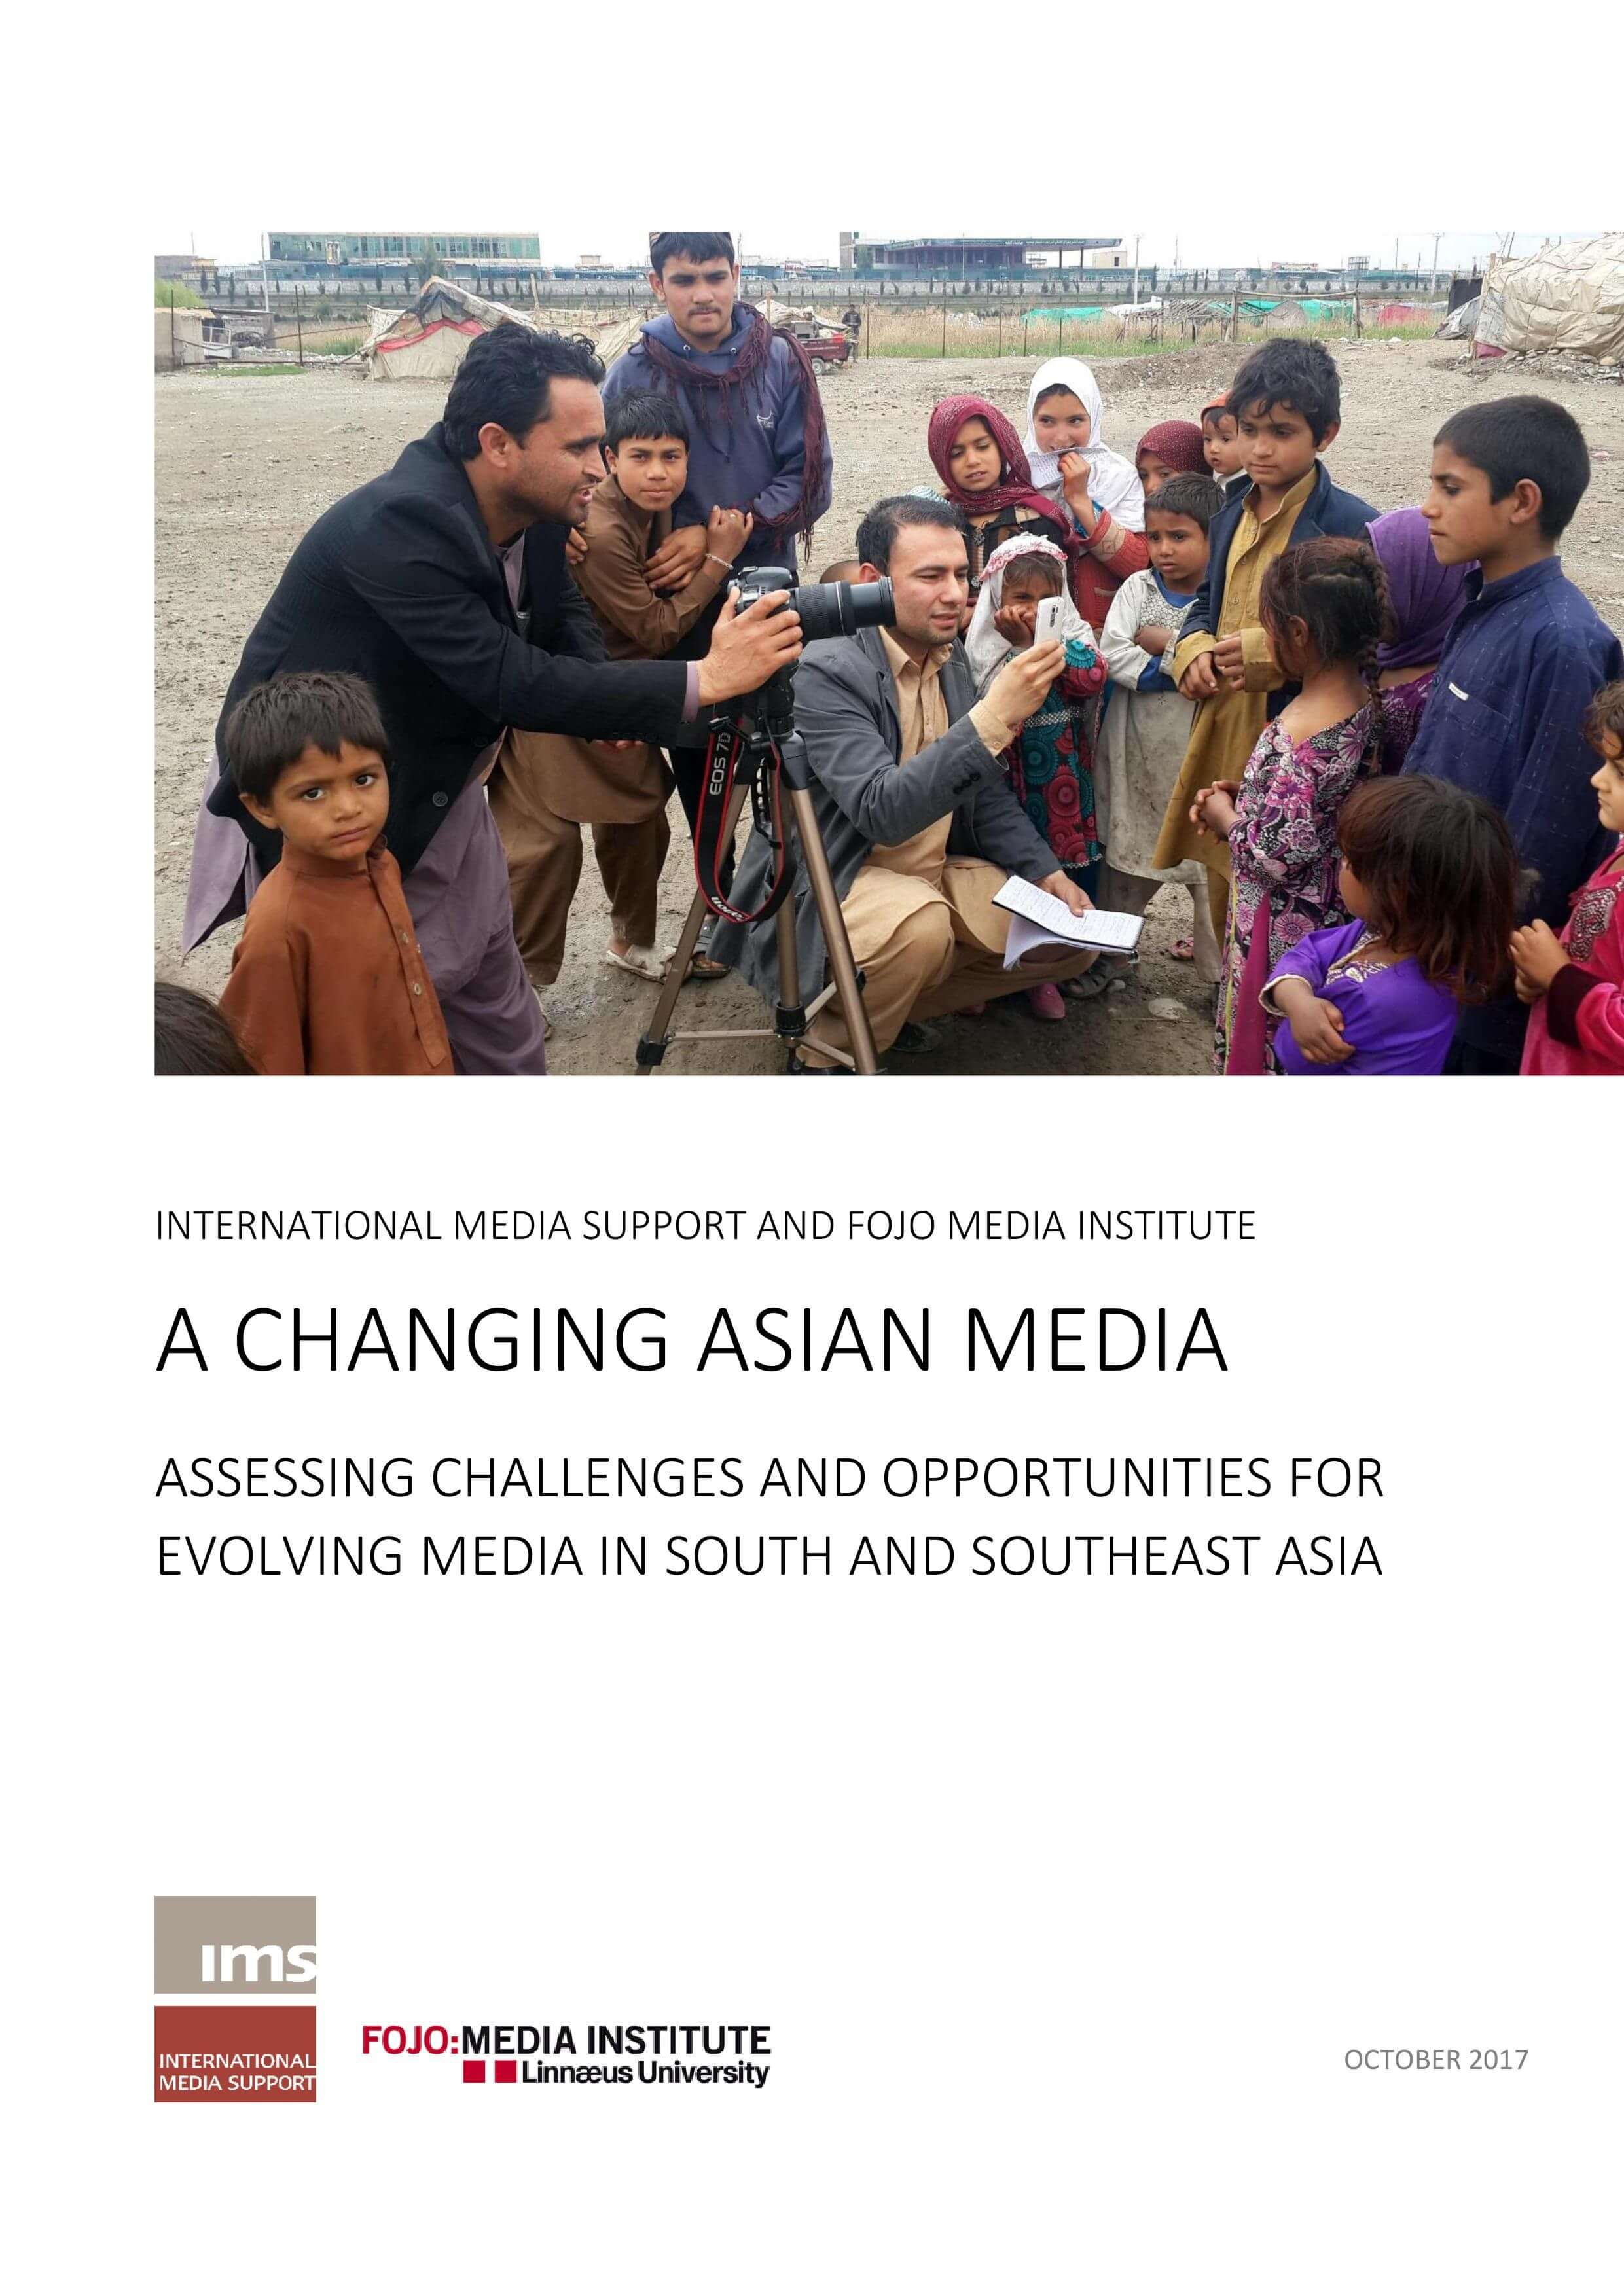 A changing Asian media